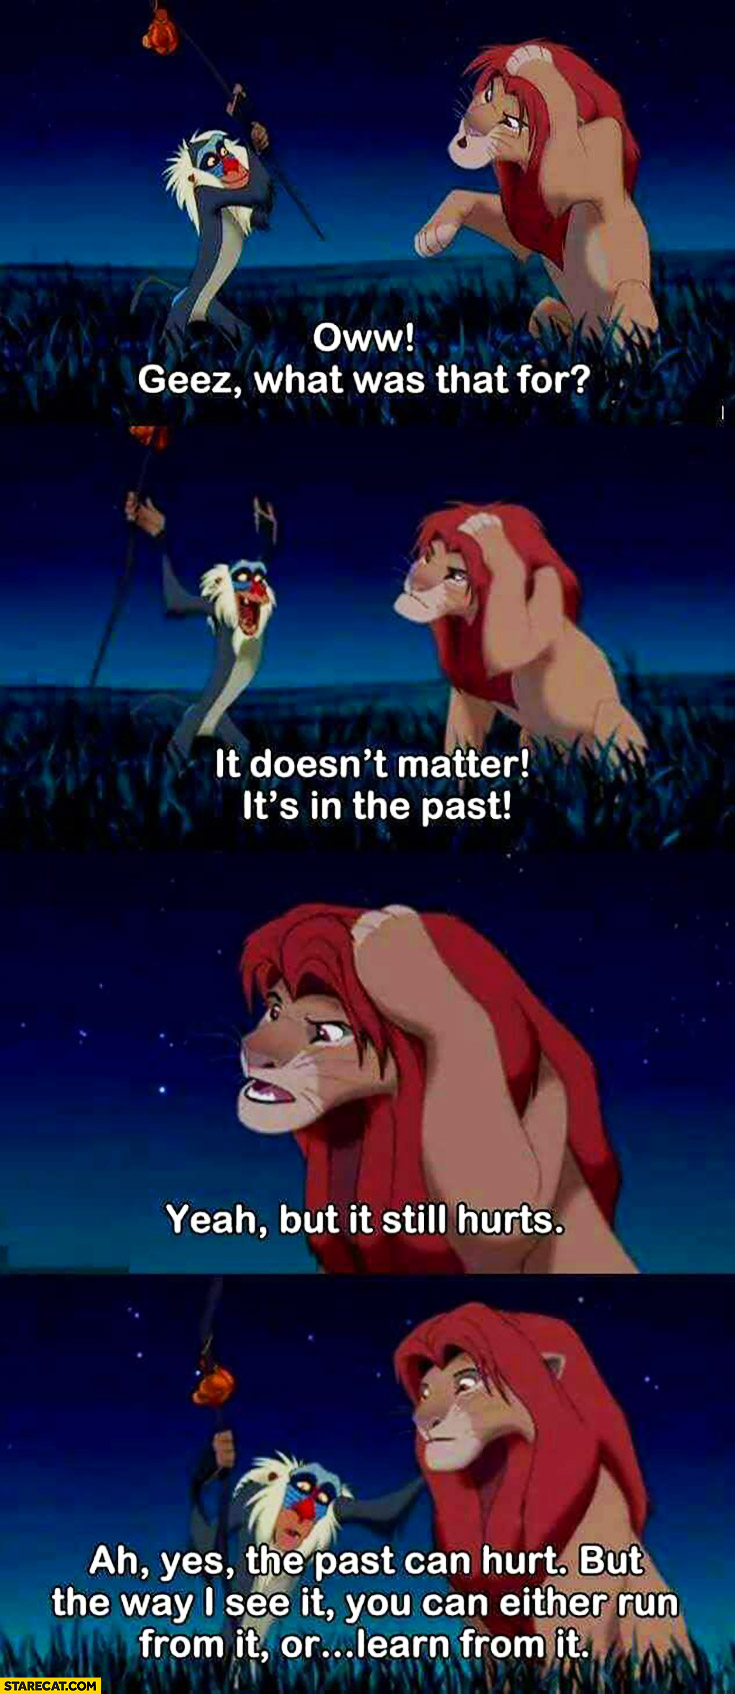 Lion King: what was that for? It doesn't matter, it's in the past. But it still hurts.Past can hurt, but the way I see it you can either run from it or learn from it